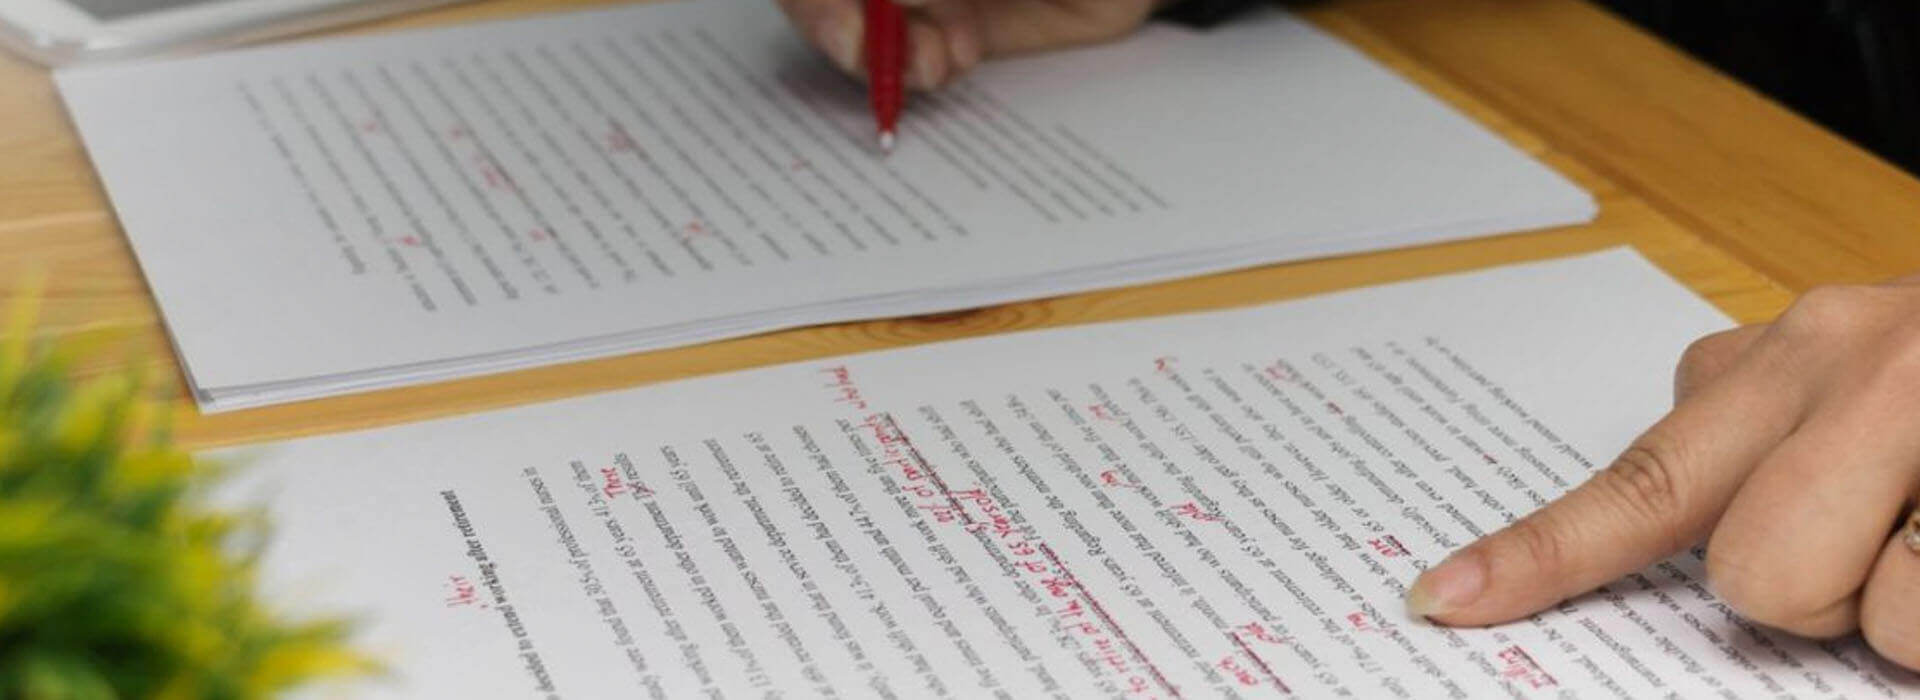 Higher Education Copy Editing Services Copyediting services